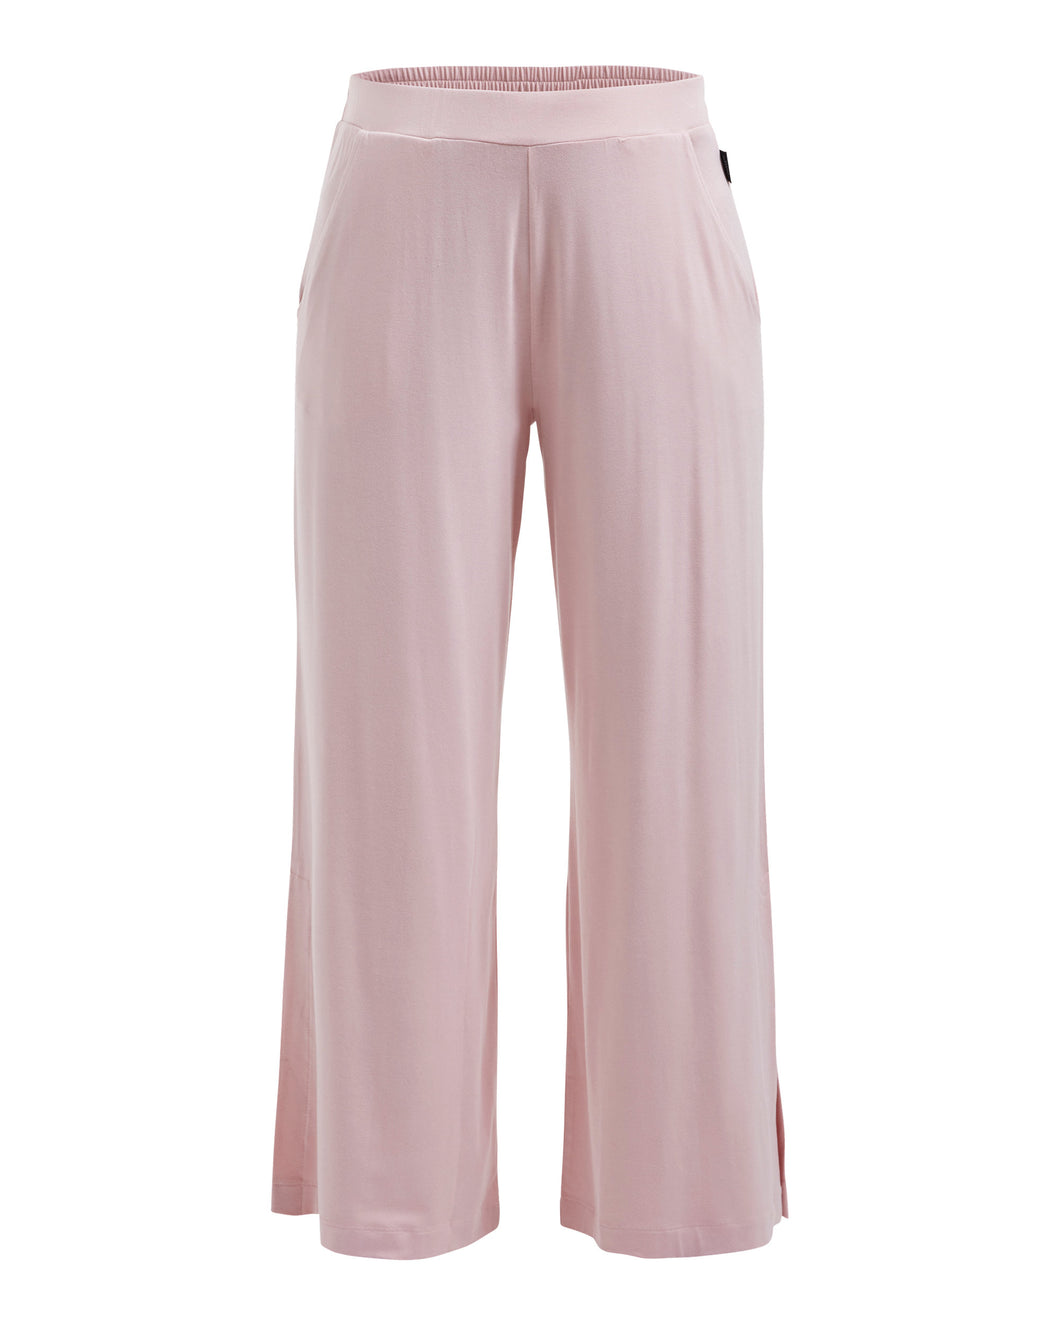 Holebrook Sweden Bianca Lounge Pants